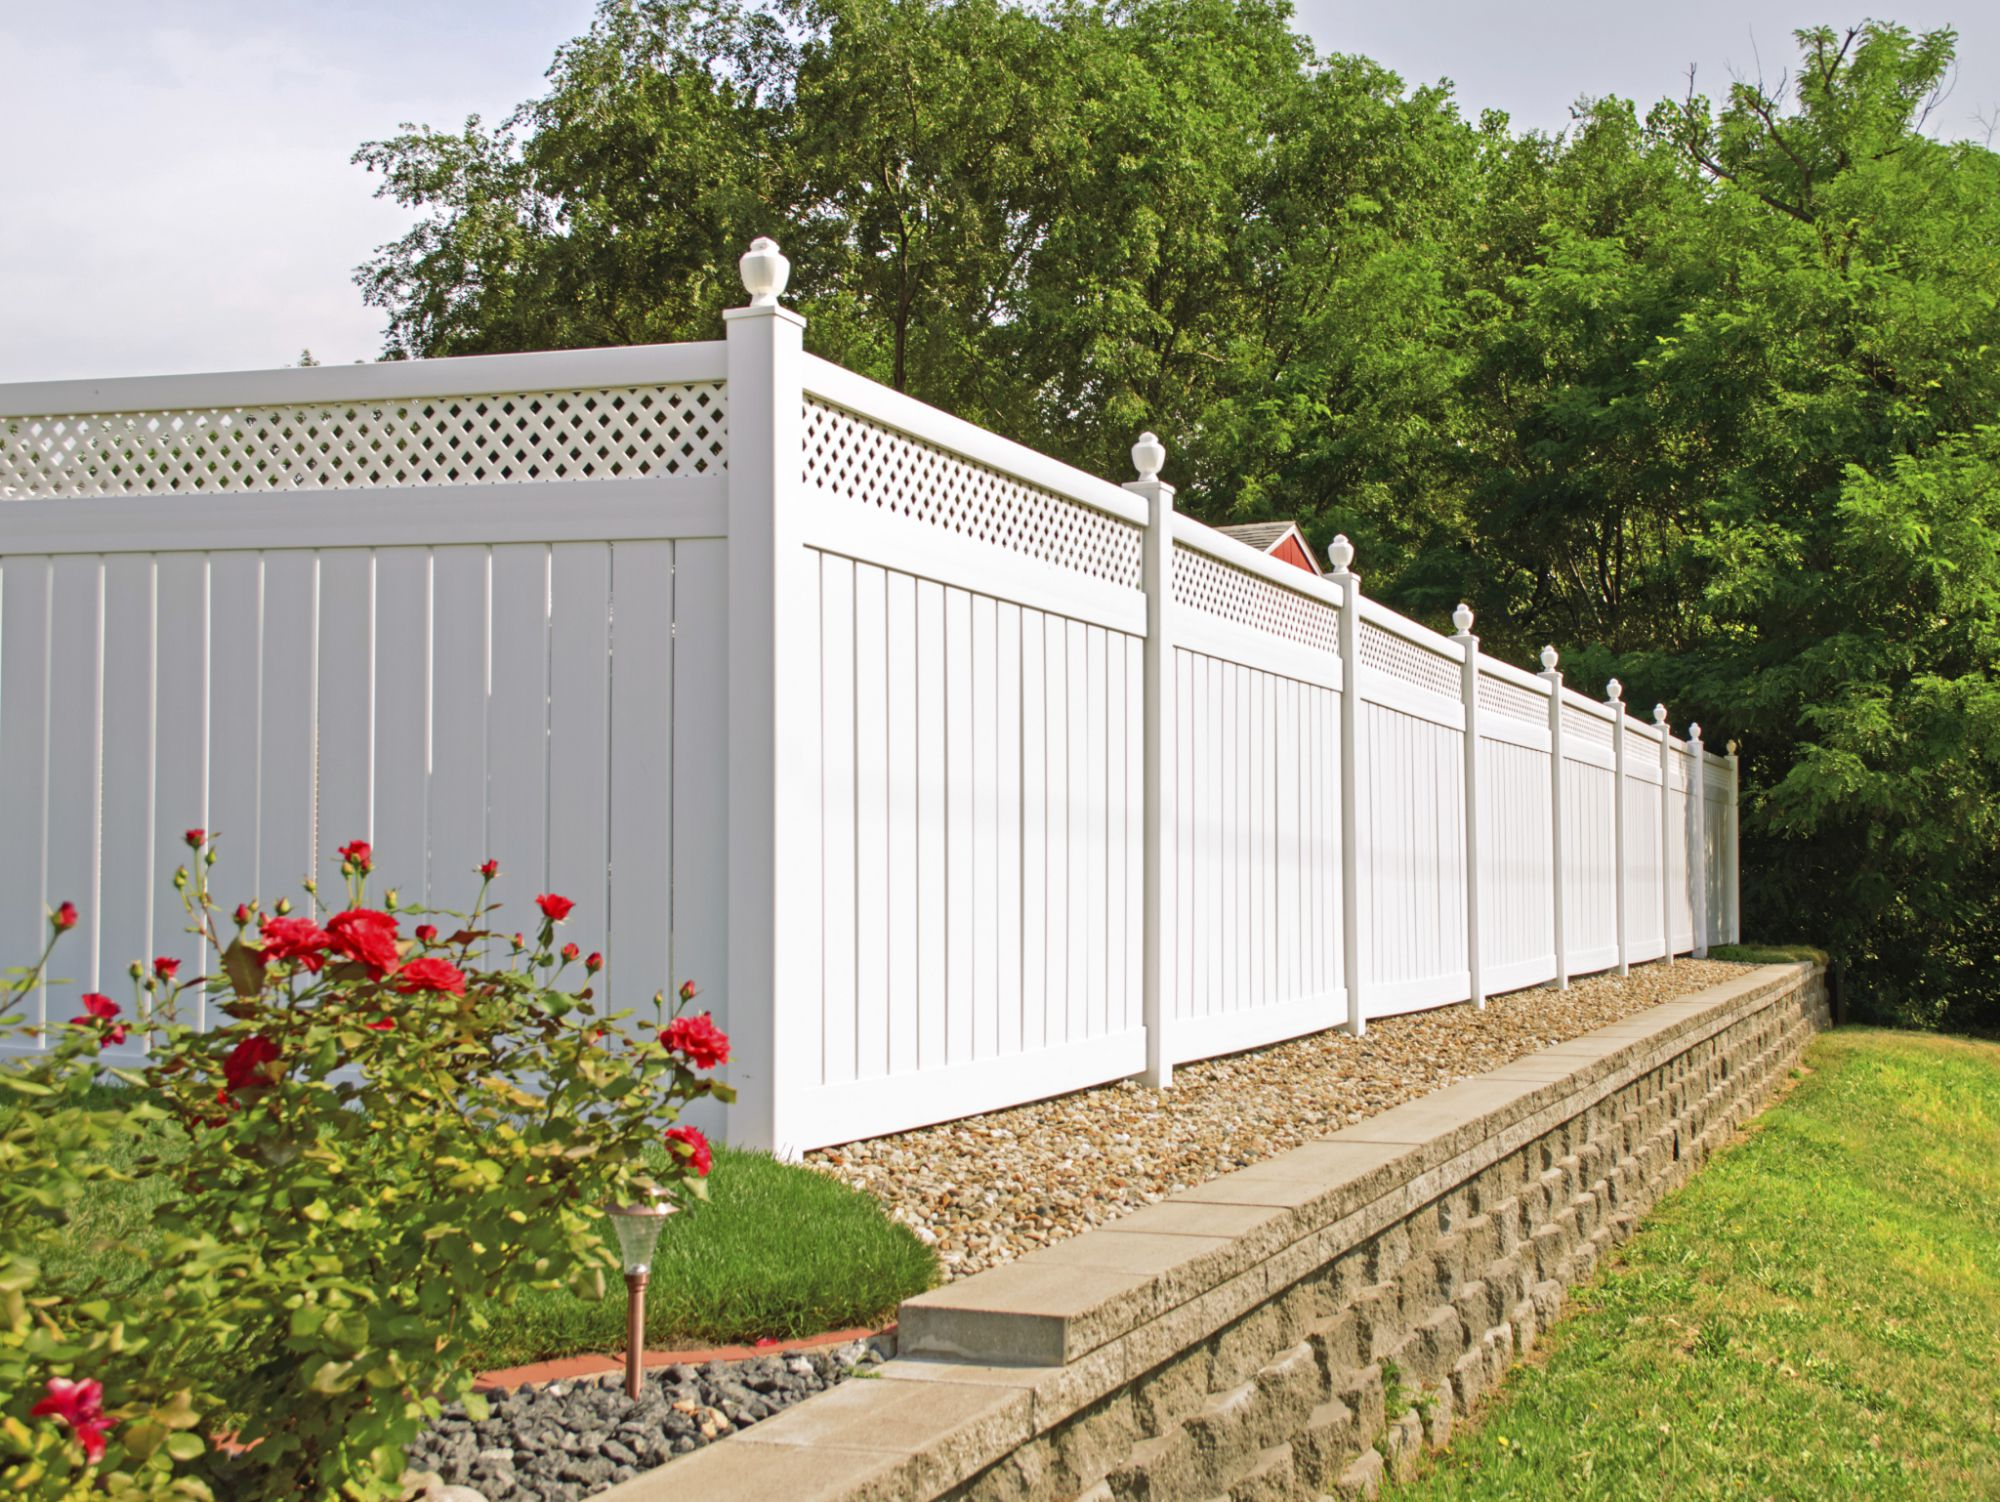 Wood vs Vinyl Fences Point by Point parison